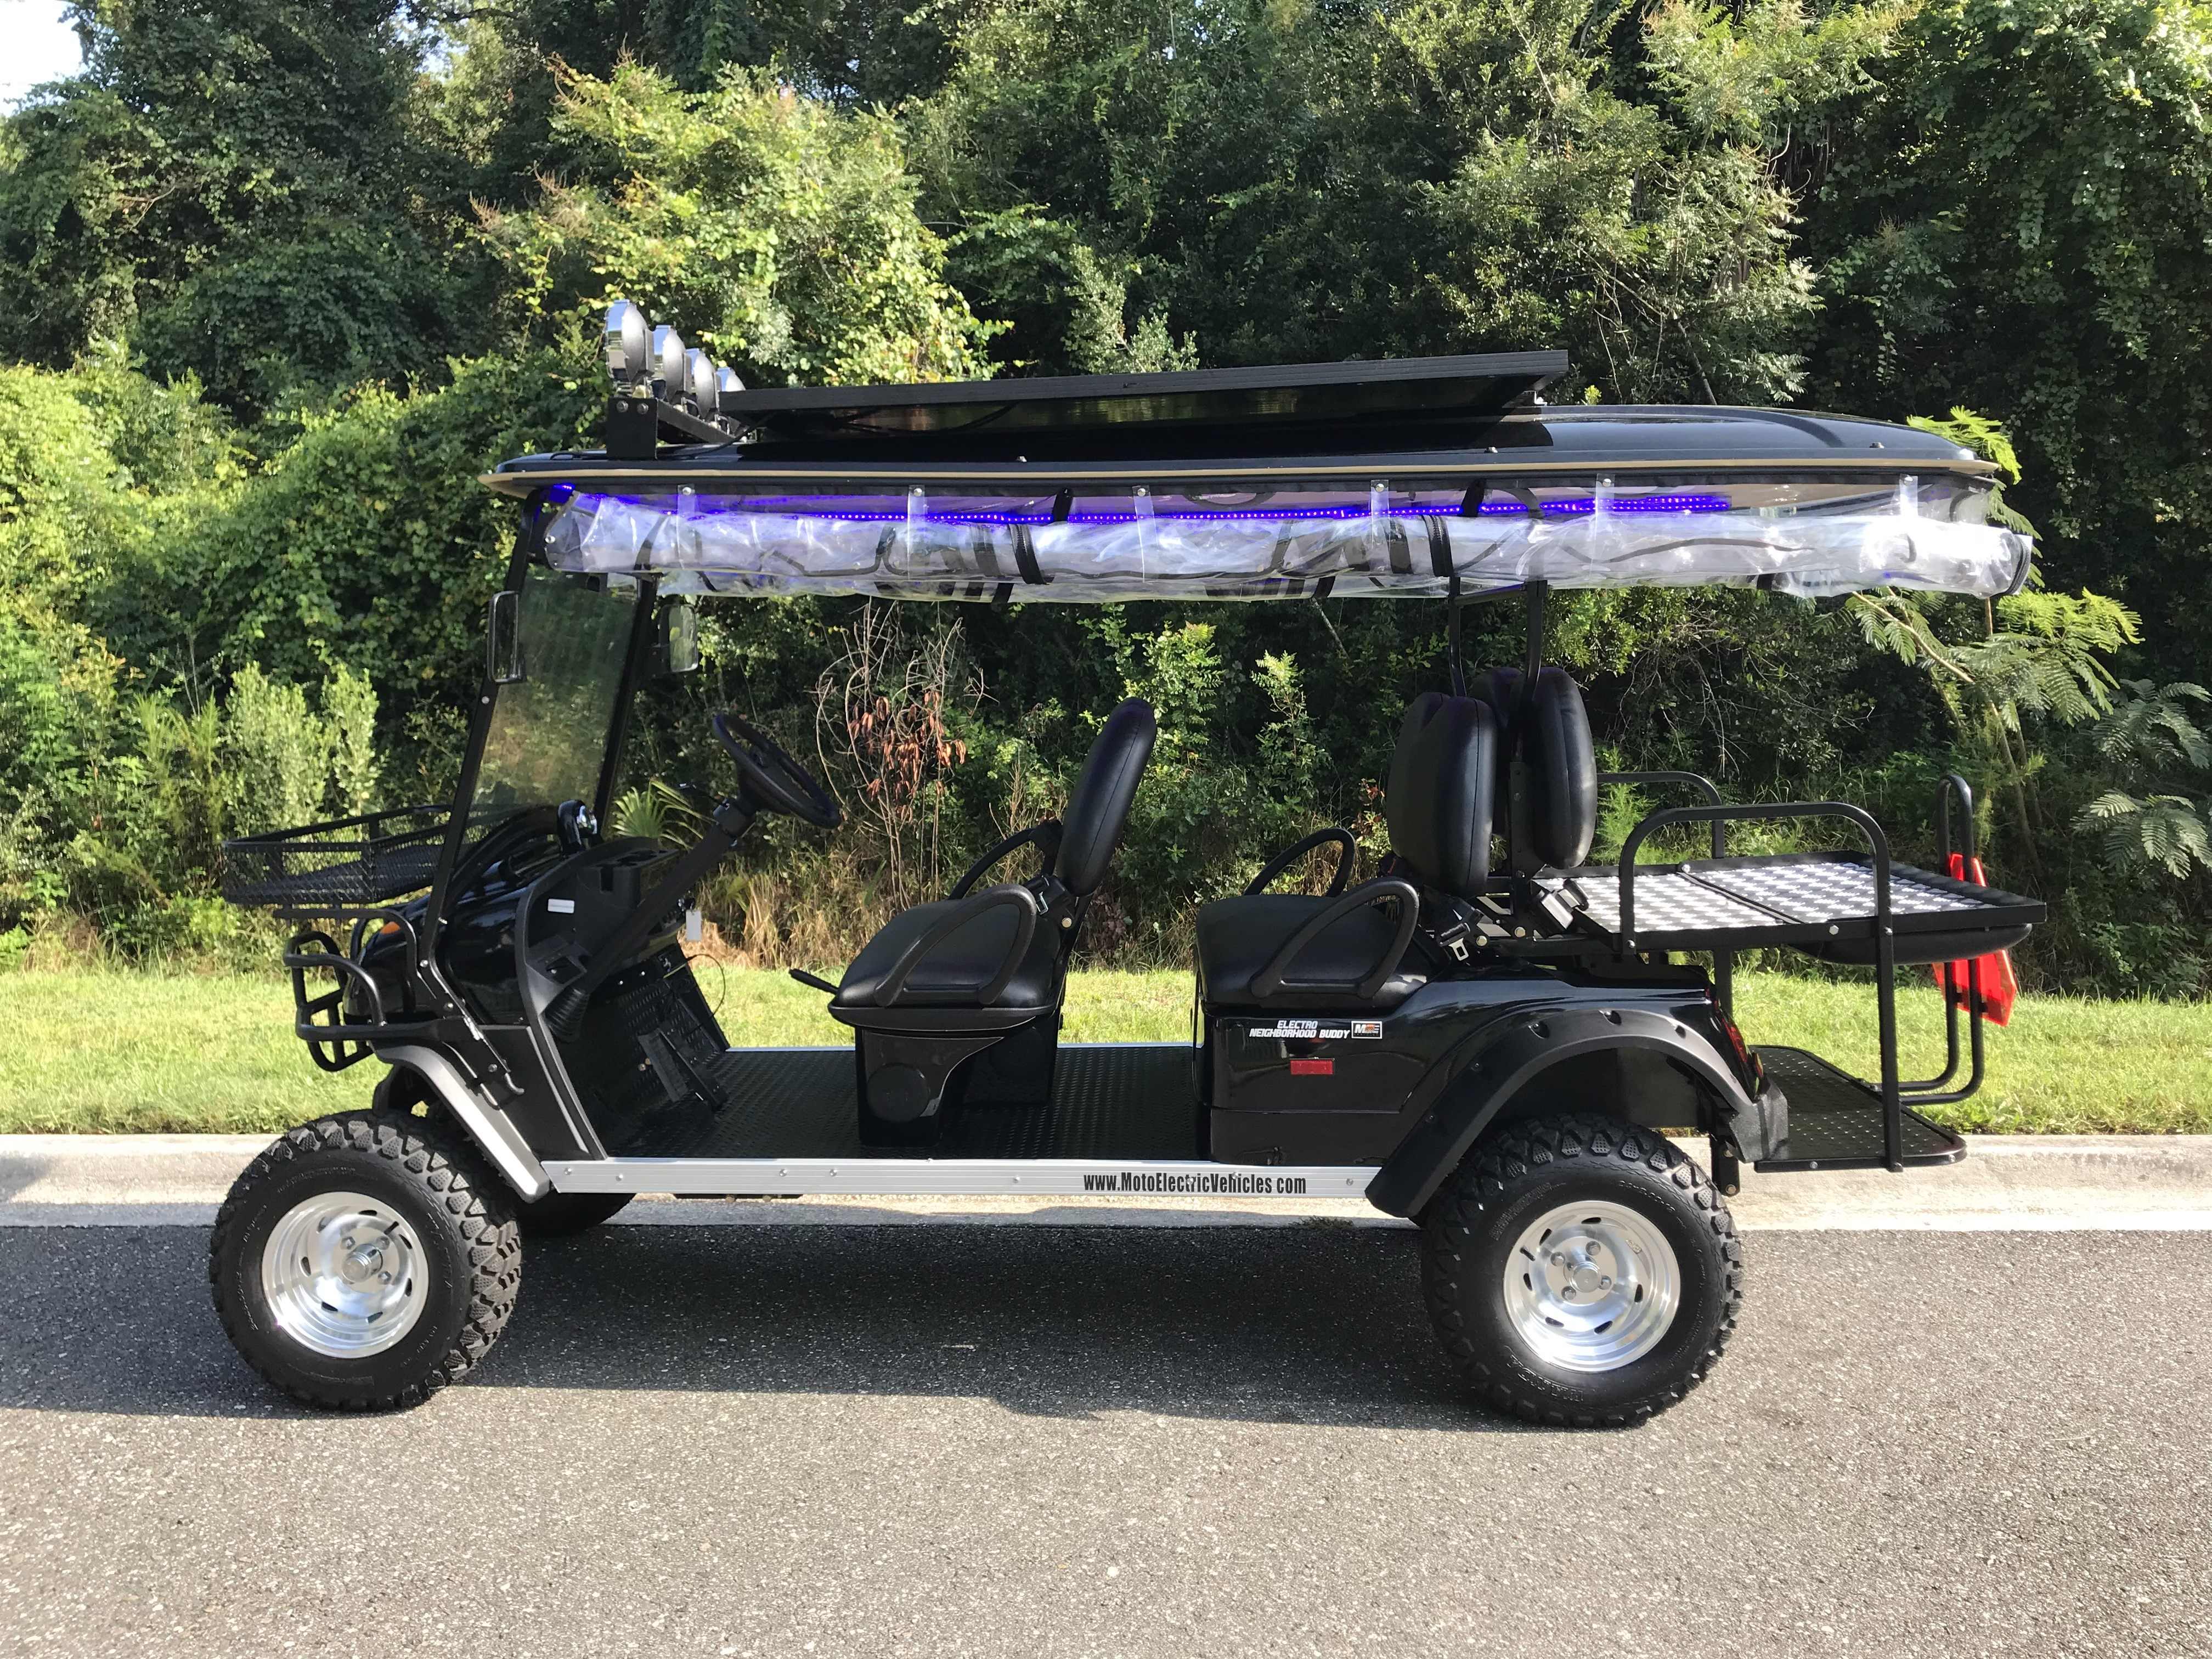 Feature Vehicle: Top Secret Tours takes delivery of their new 6 Passenger Highriser!